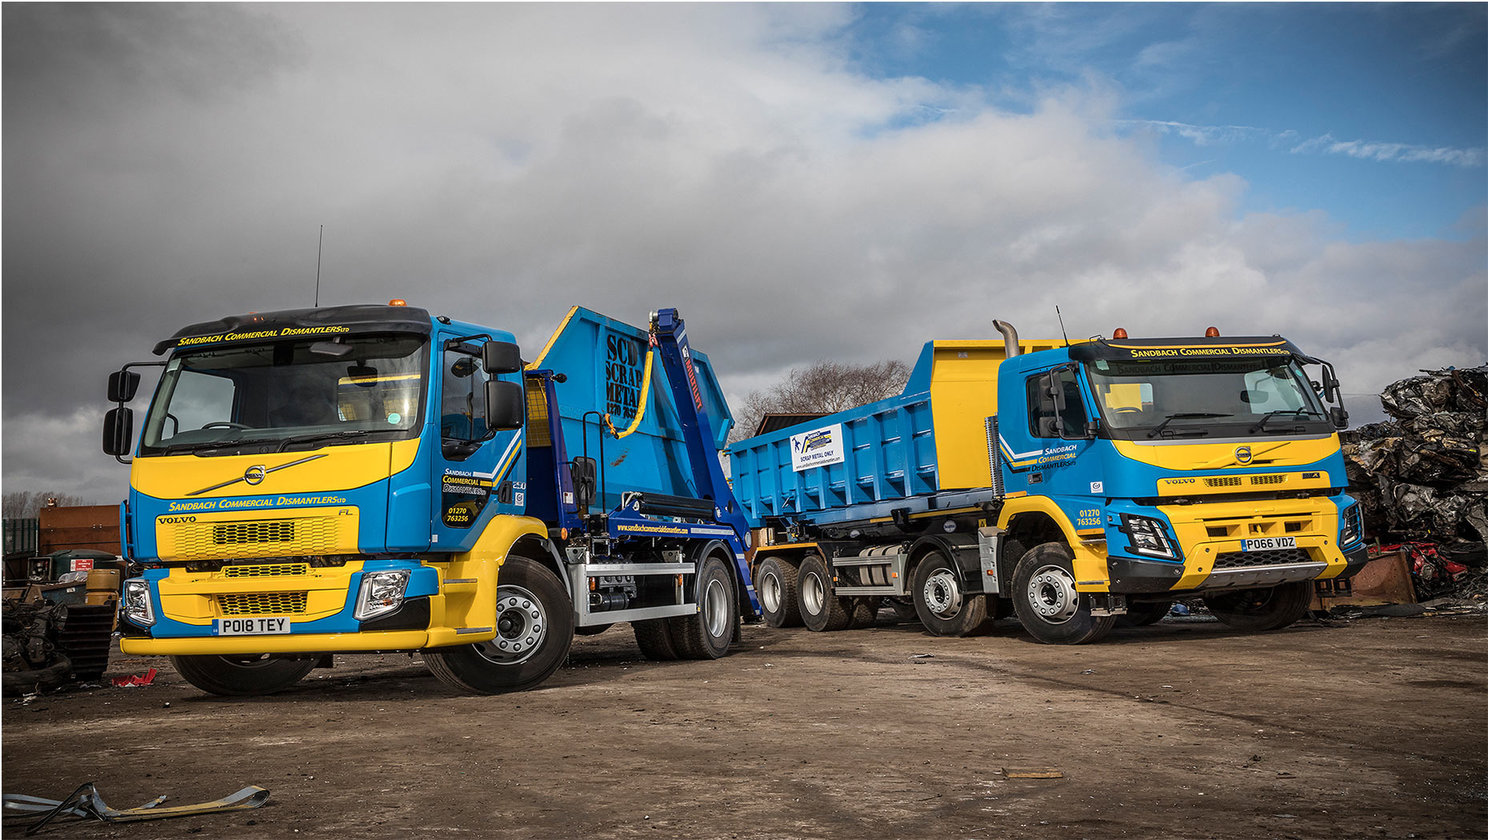 Sandbach Commercial Dismantlers invests in Volvo Trucks